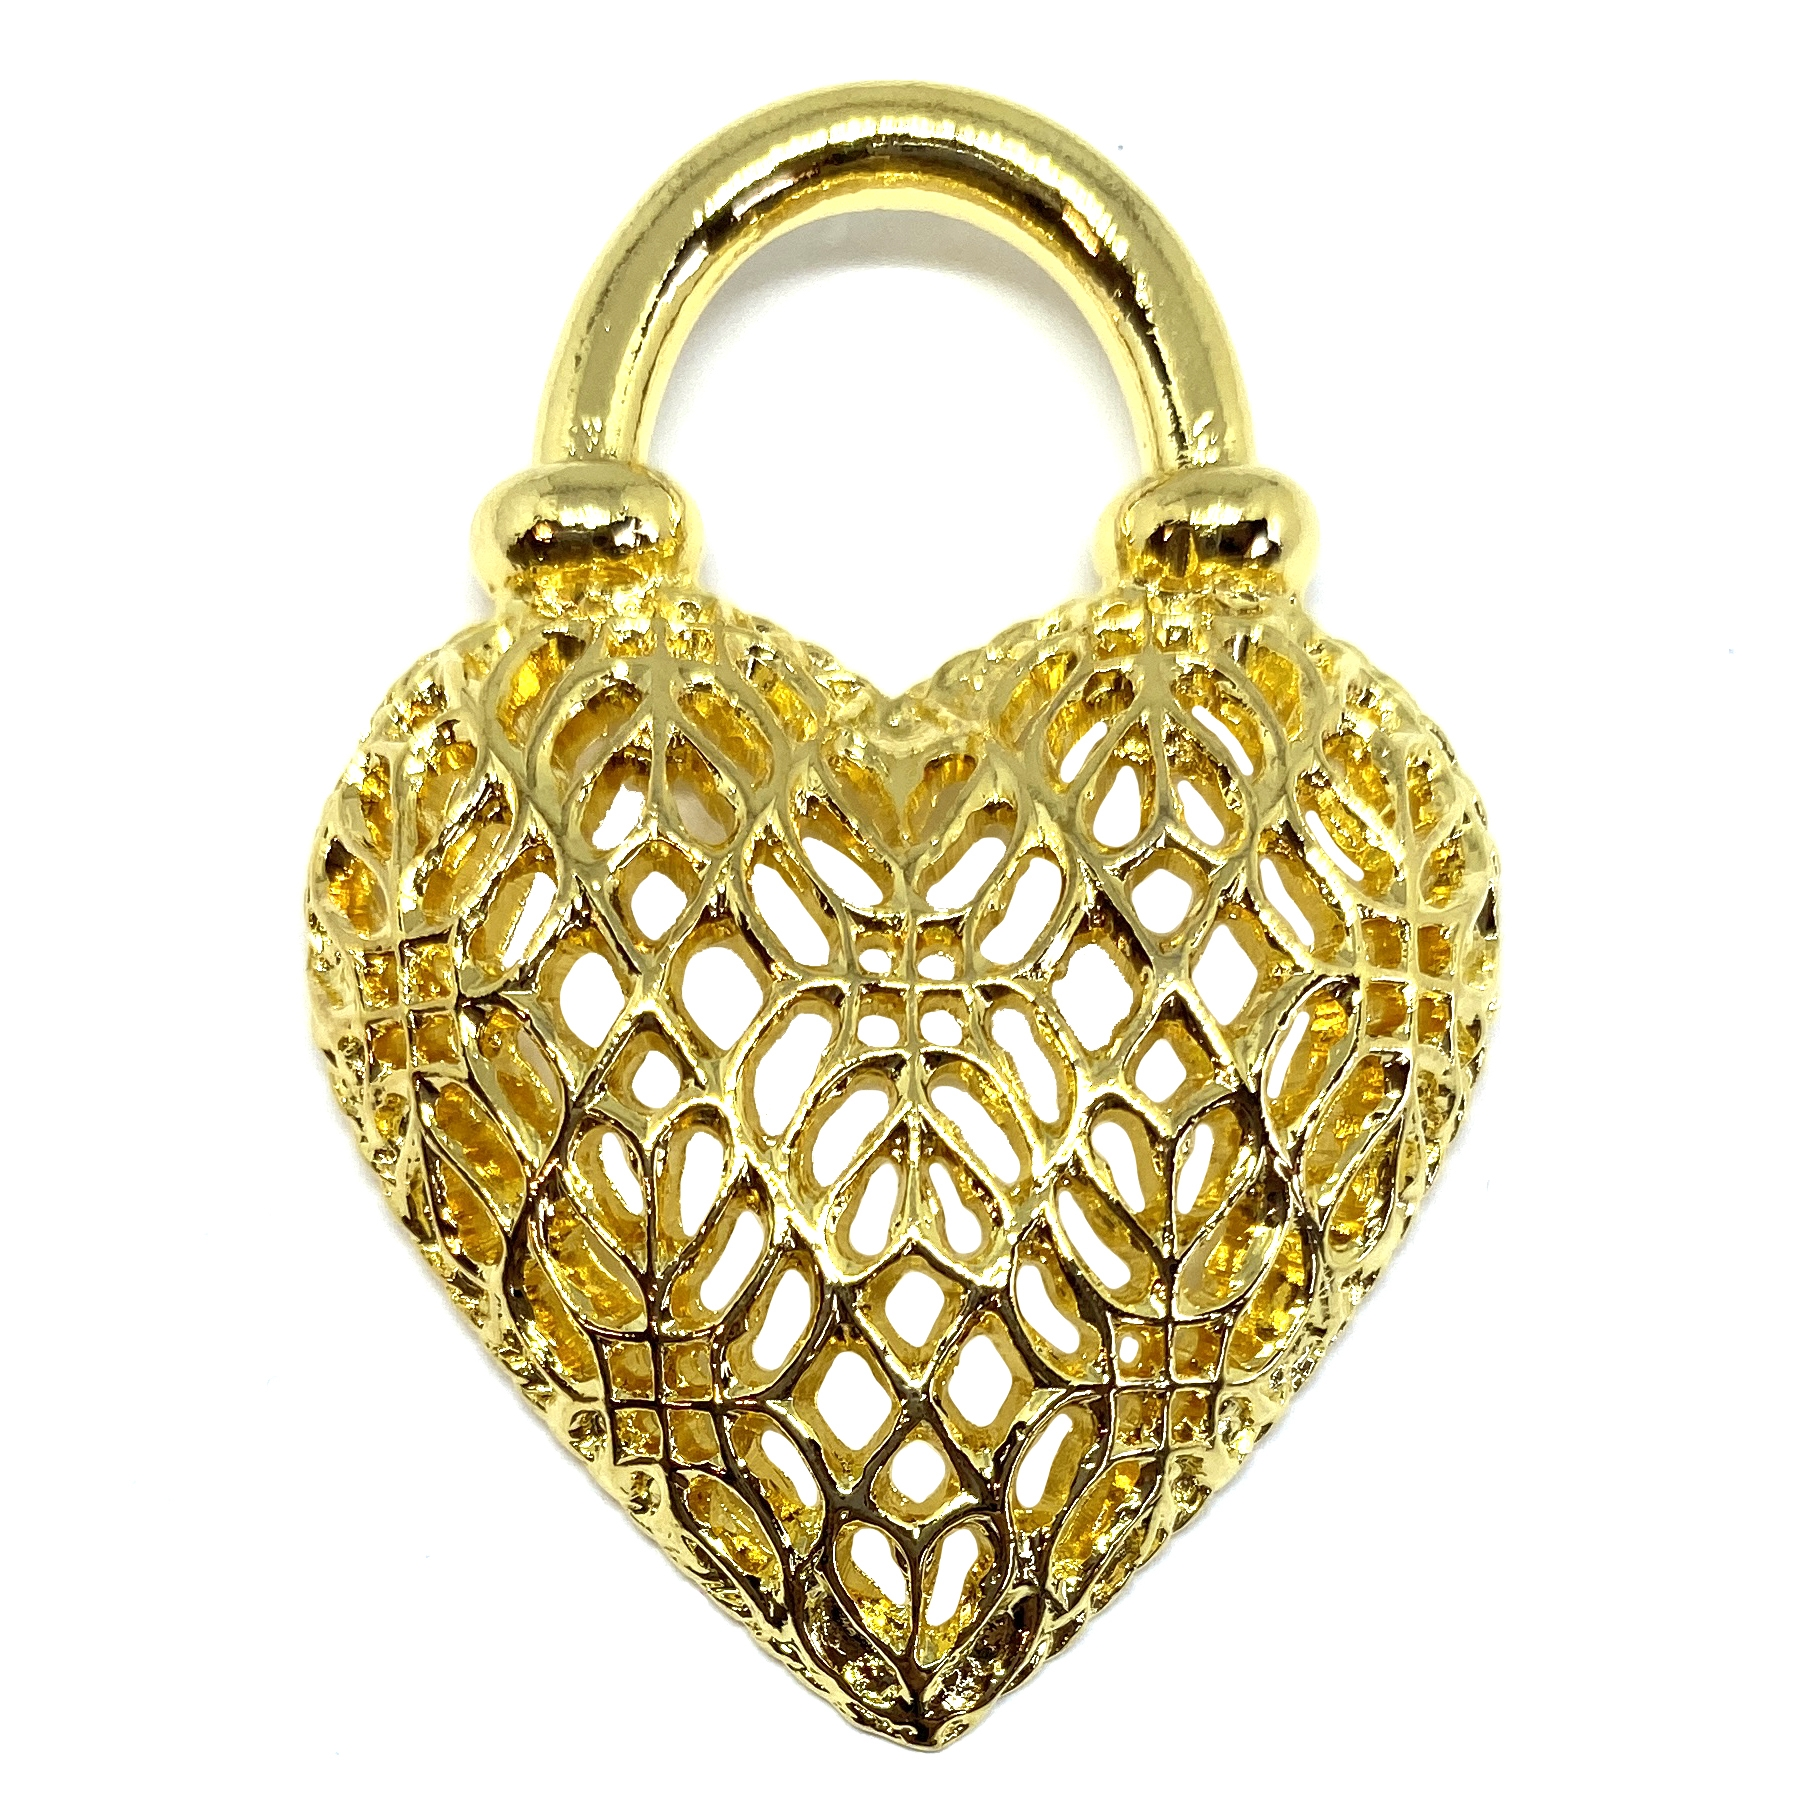 22K gold finish, filigree heart, 01621, lead free pewter, B'sue by 1928, pewter jewelry parts, lead free finish, made in the USA, 1928 Company, designer jewelry, B'sue Boutiques, heart